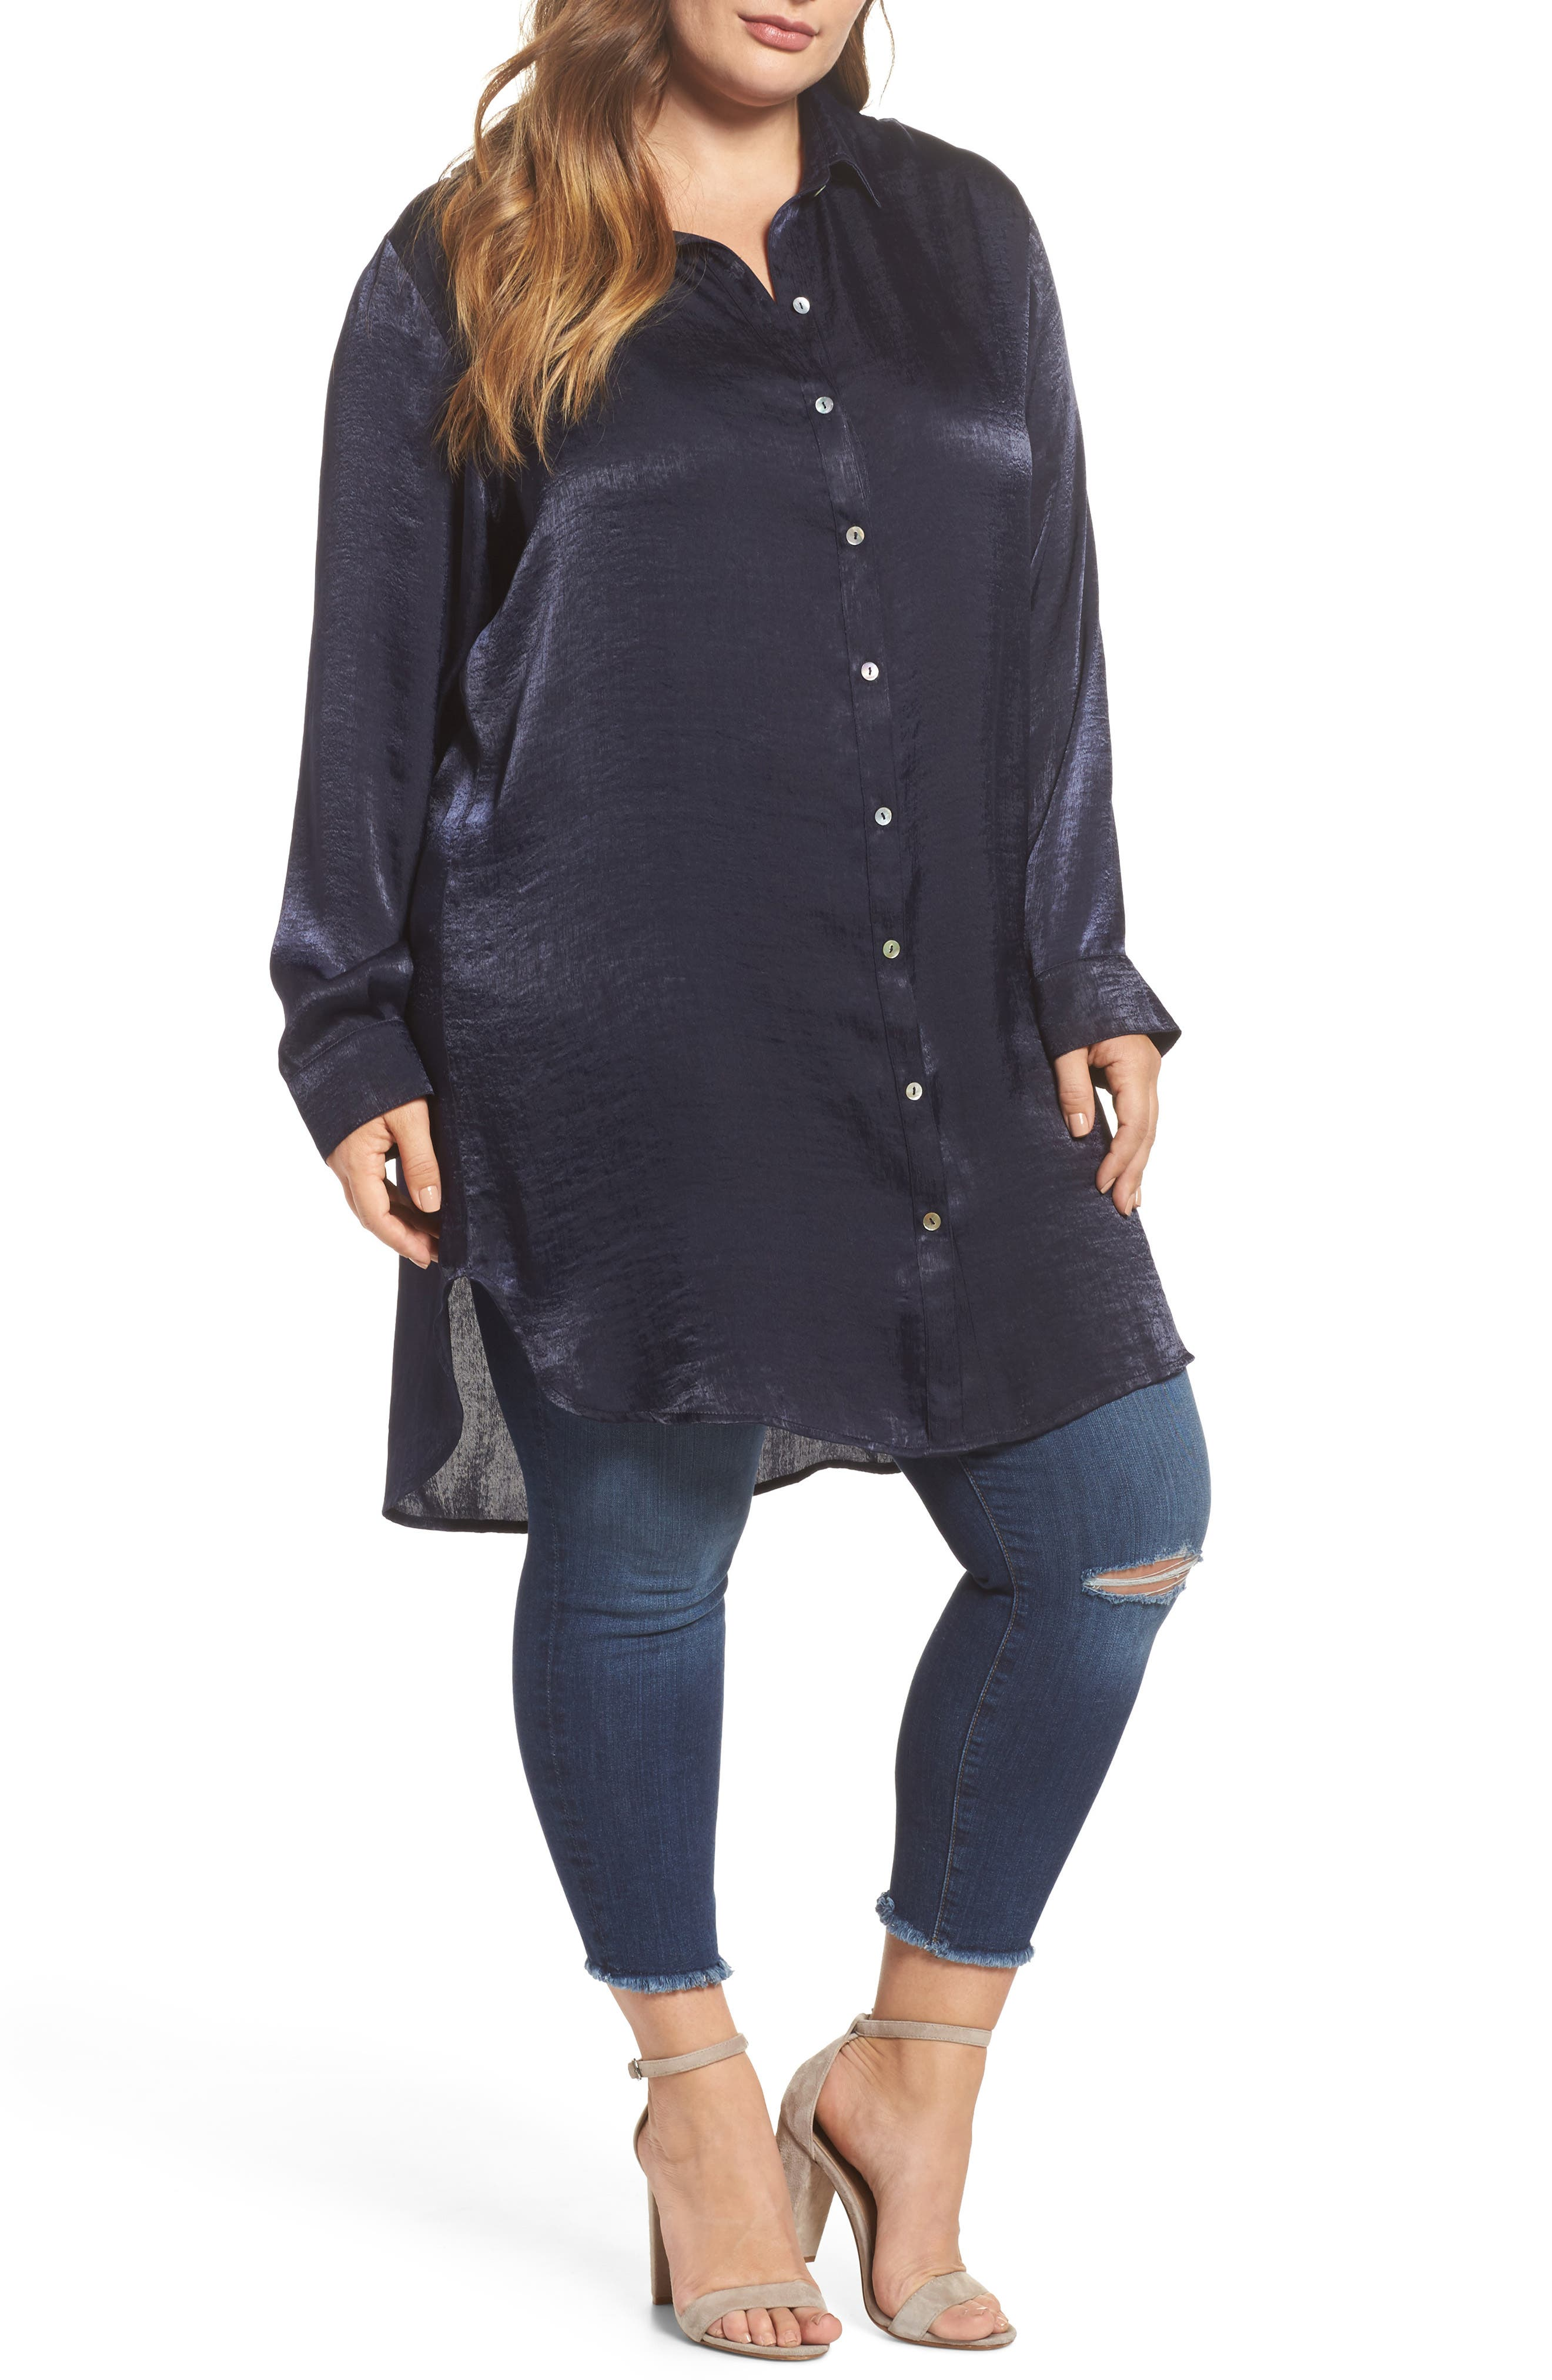 SLINK Jeans Hammered Satin Tunic Shirt (Plus Size)